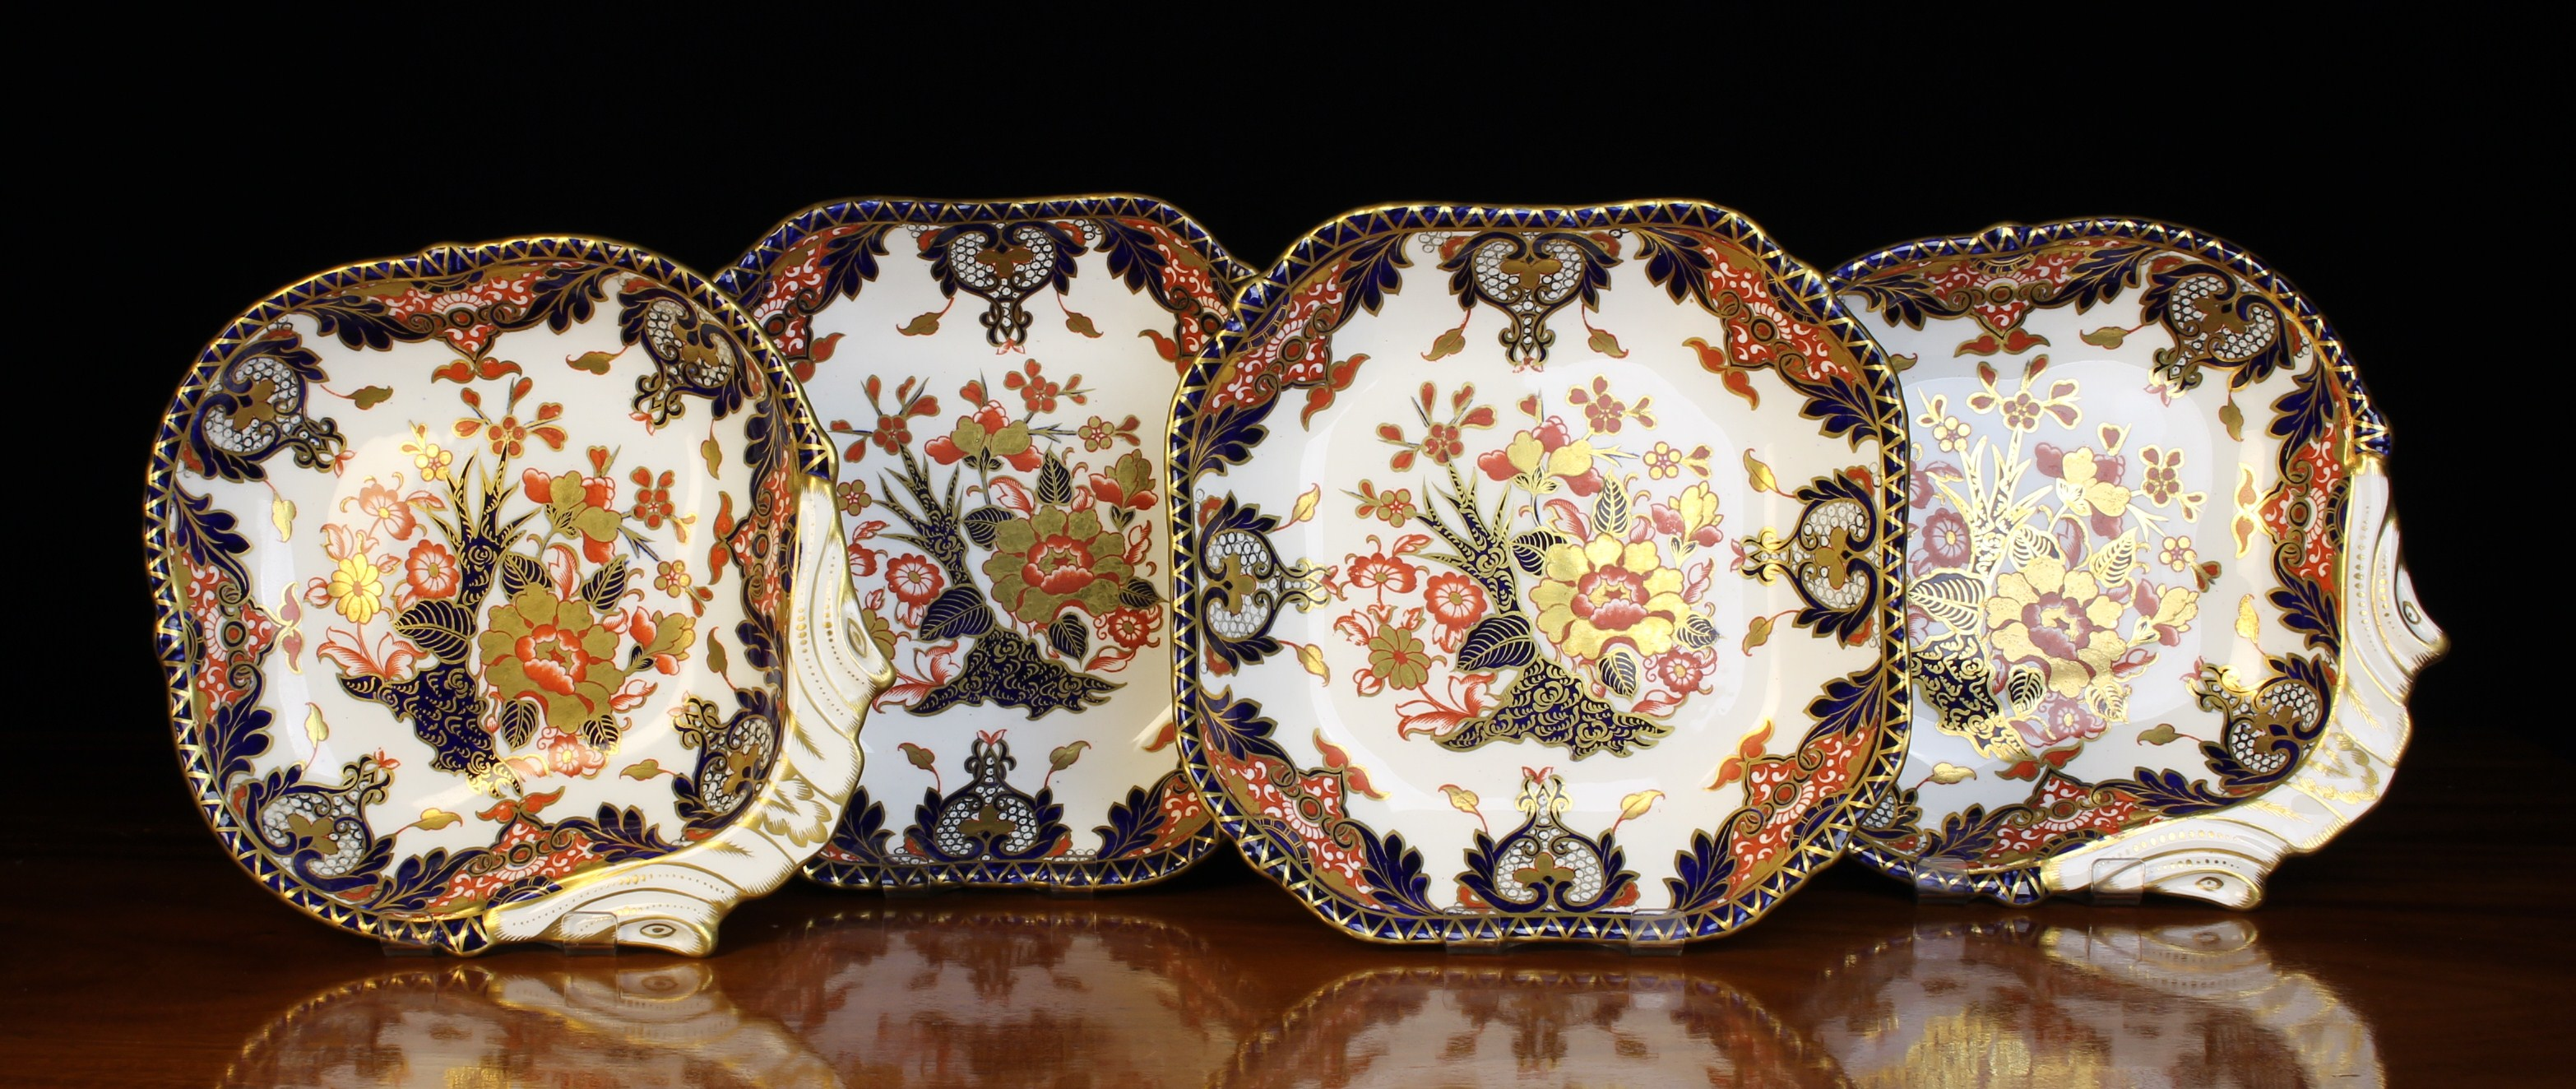 Two Pairs of Royal Crown Derby 'Kings' Pattern Imari Serving Dishes decorated with floral design in